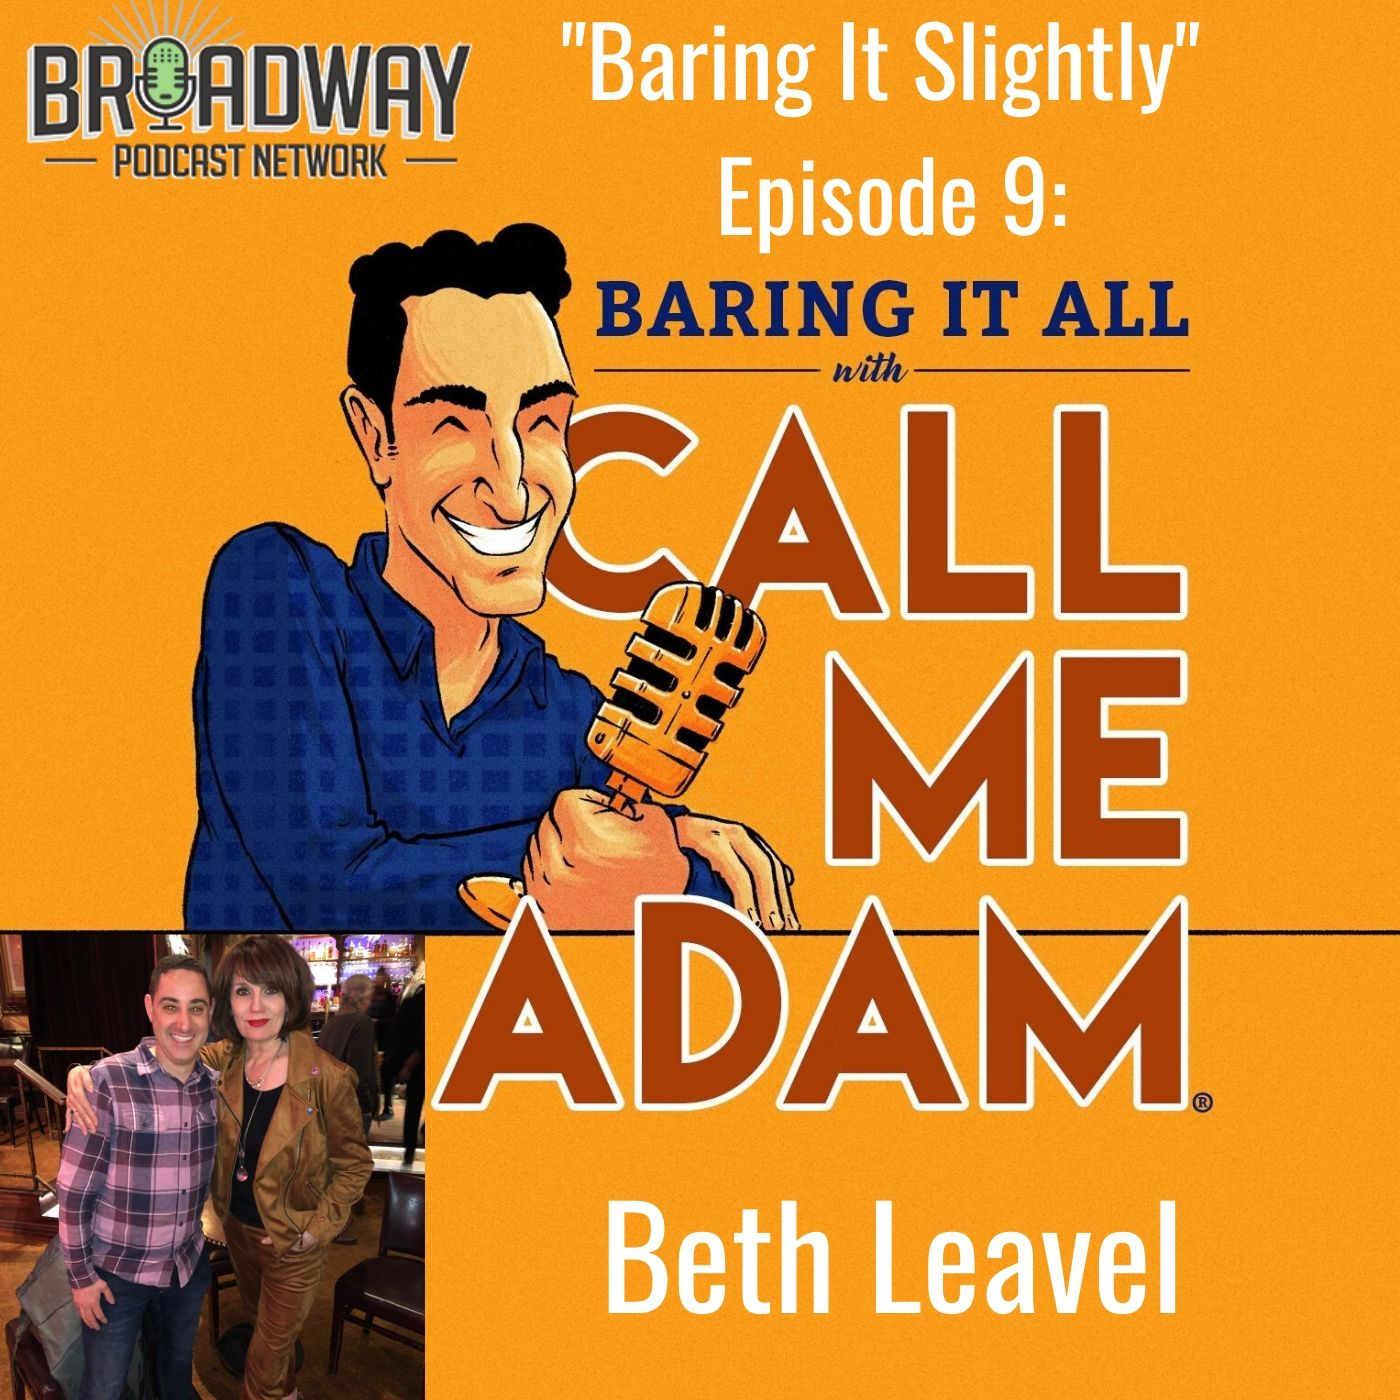 Baring It All With Call Me Adam Baring It Slighty Ep 9 Beth Leavel